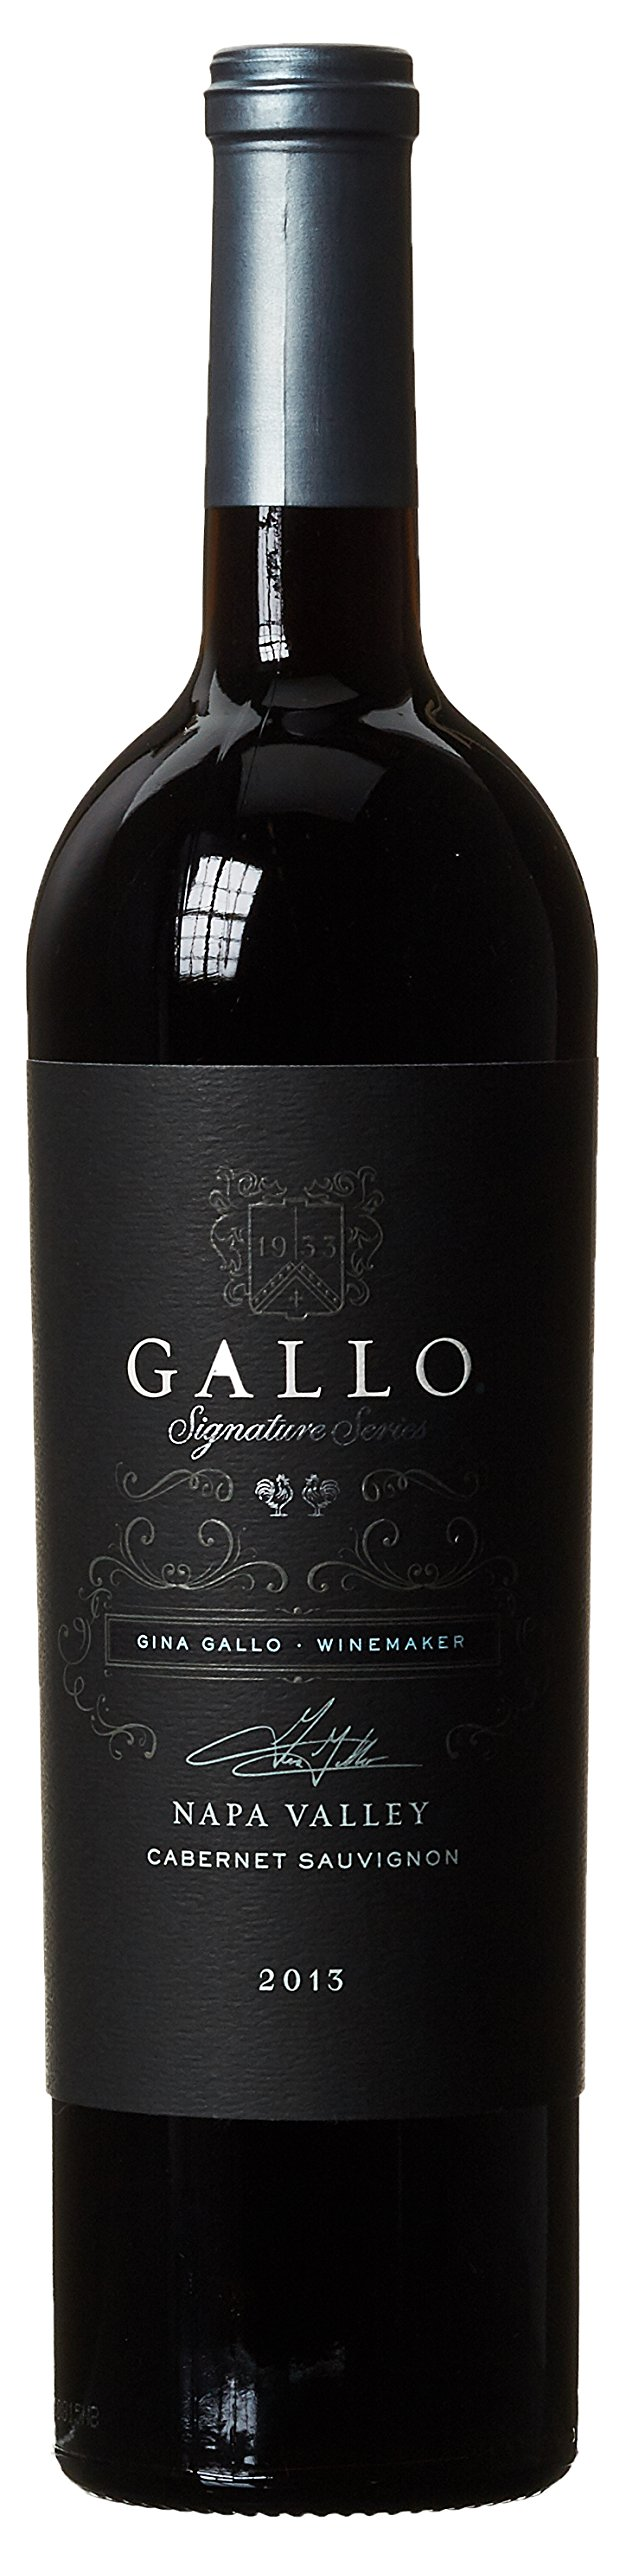 Gallo-Signature-Cabernet-Sauvignon-Napa-Valley-2014-trocken-1-x-075-l